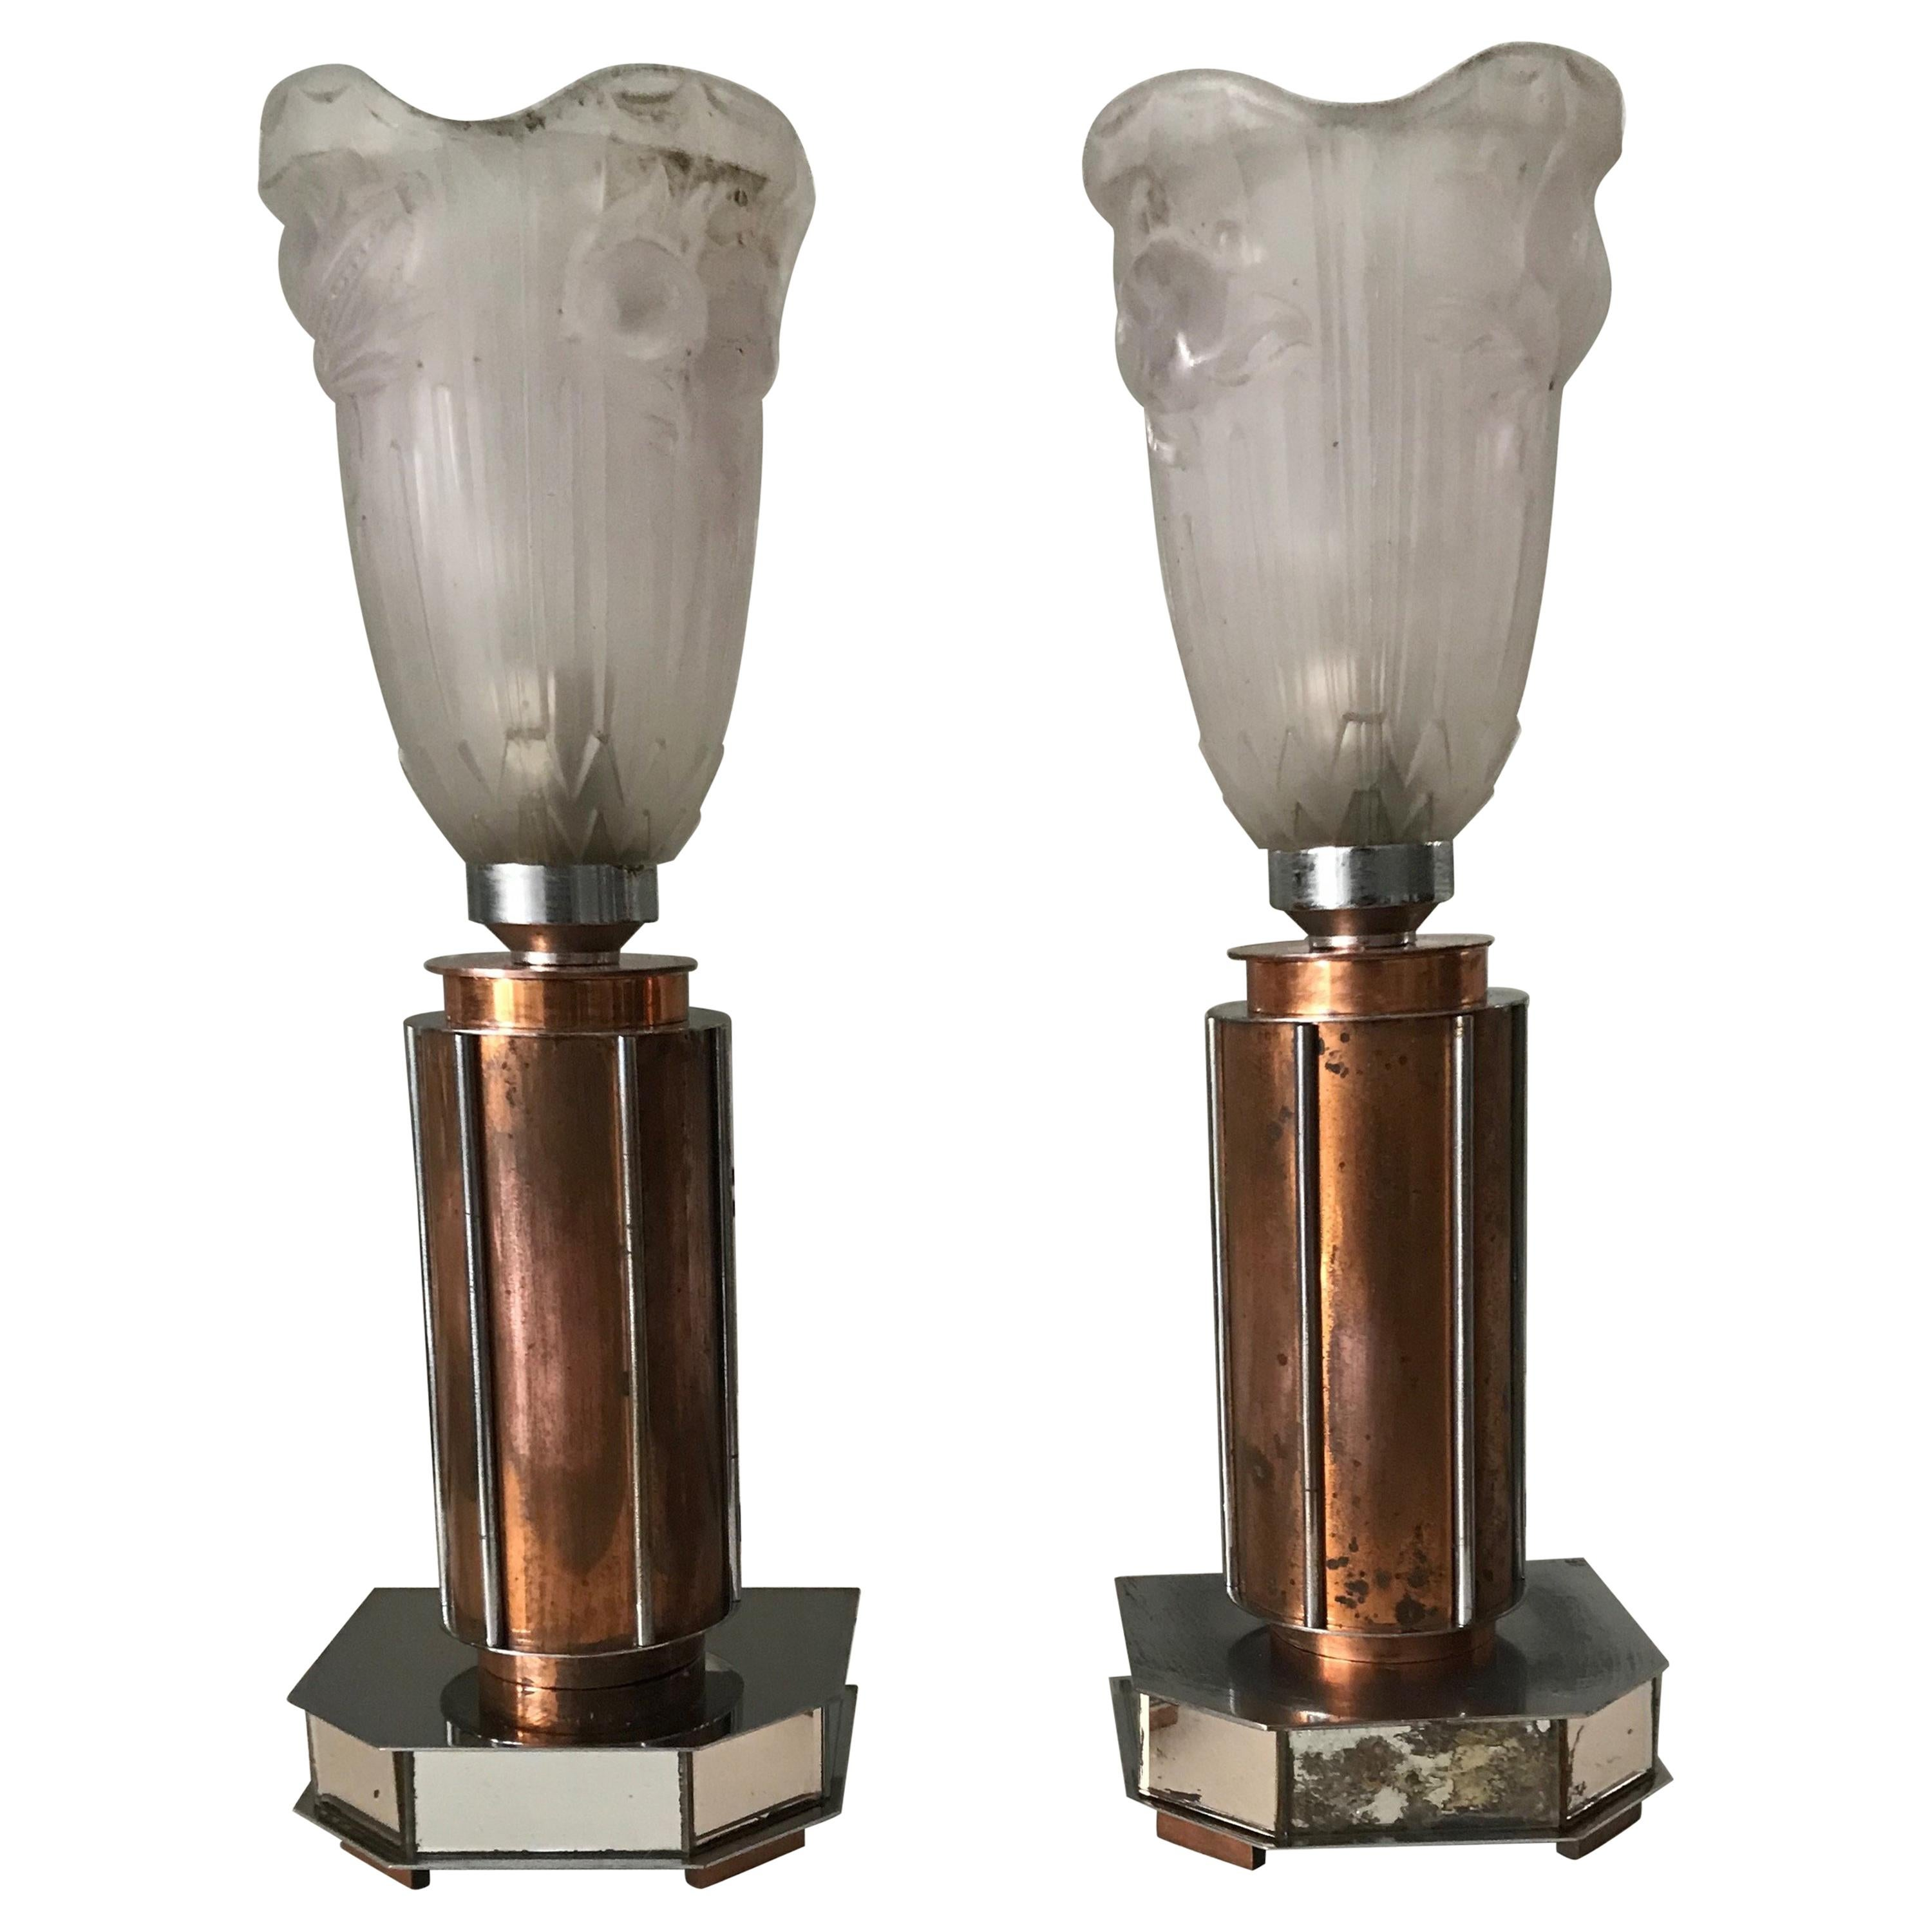 Pair of French Art Deco/Modernist Chrome & Copper Table Lamps with Glass Shades